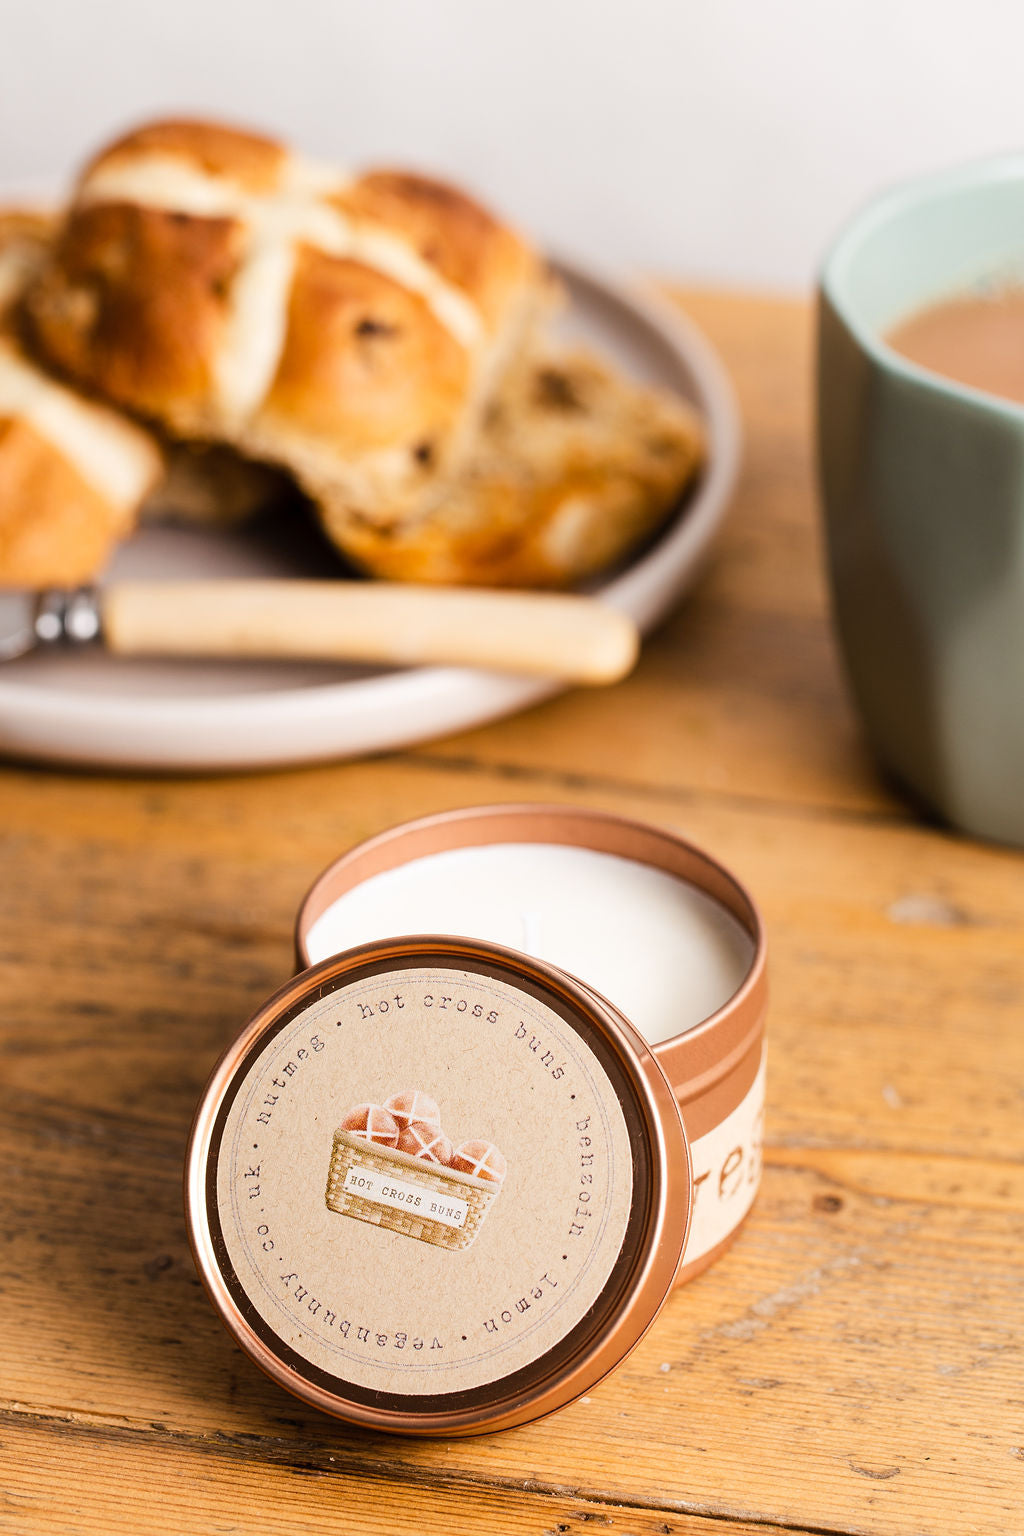 Hot cross Buns Candle